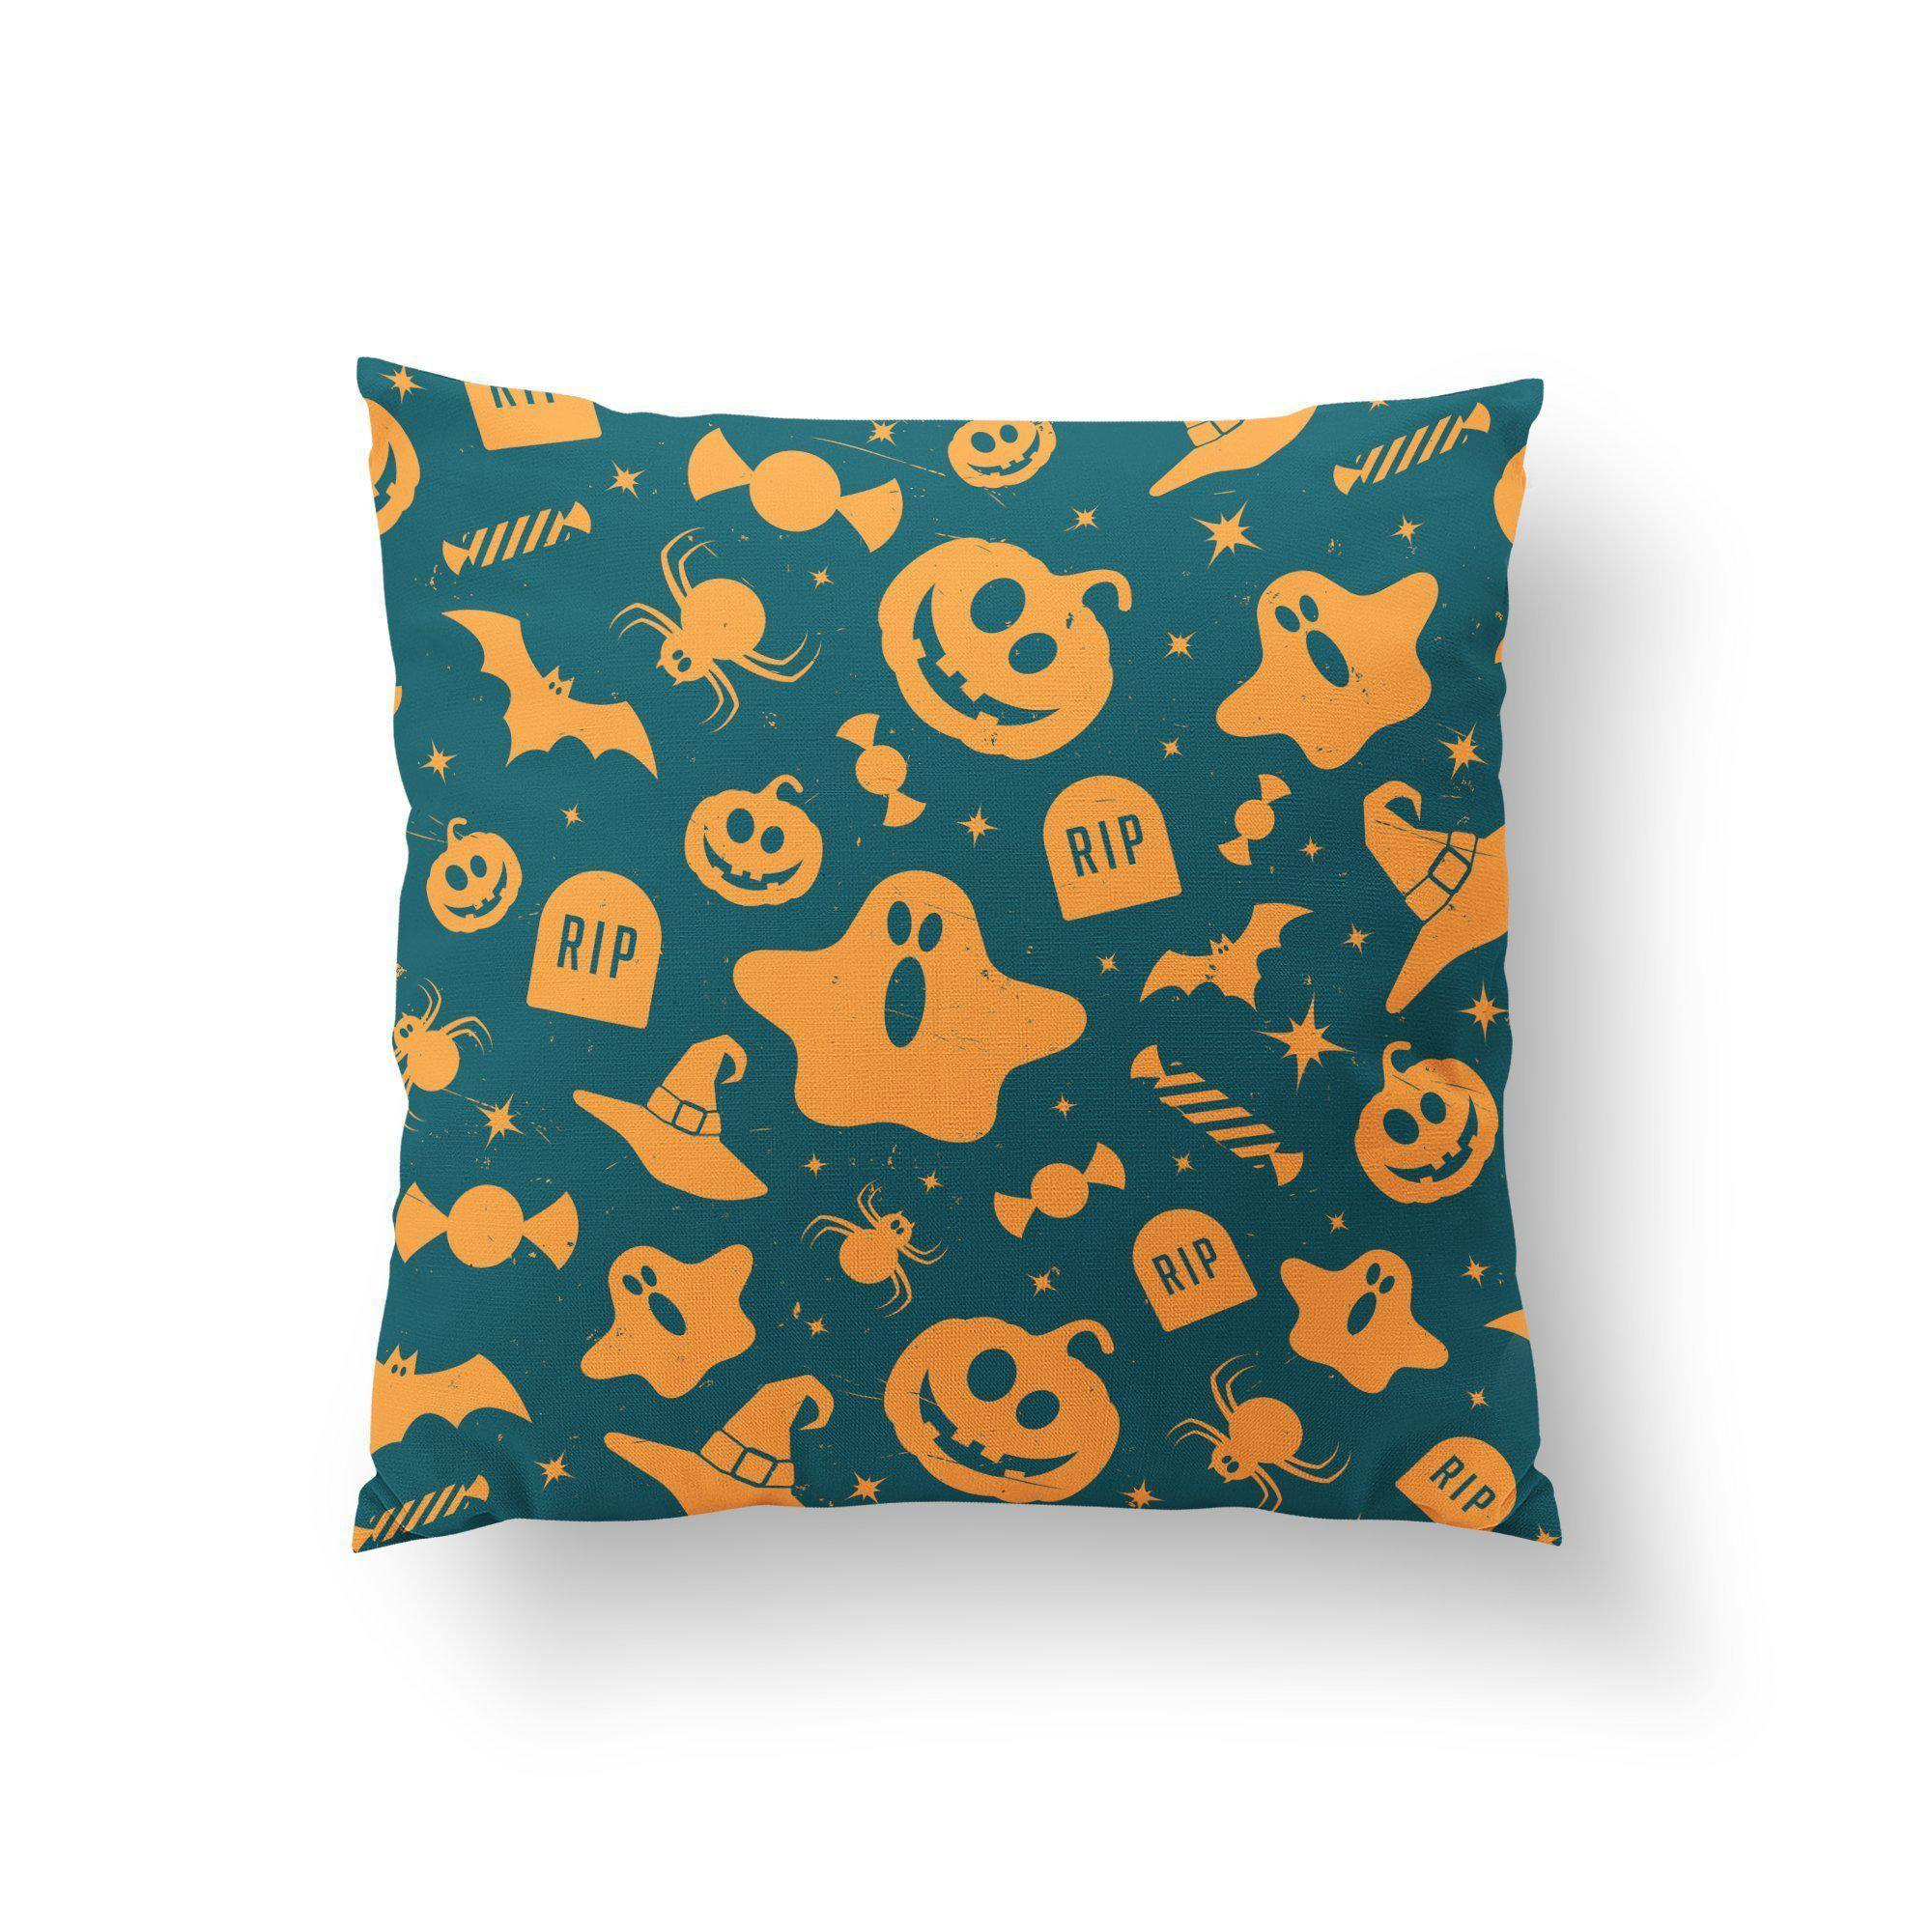 Family Friendly Halloween Throw Pillow - Pillow Covers - W.FRANCIS